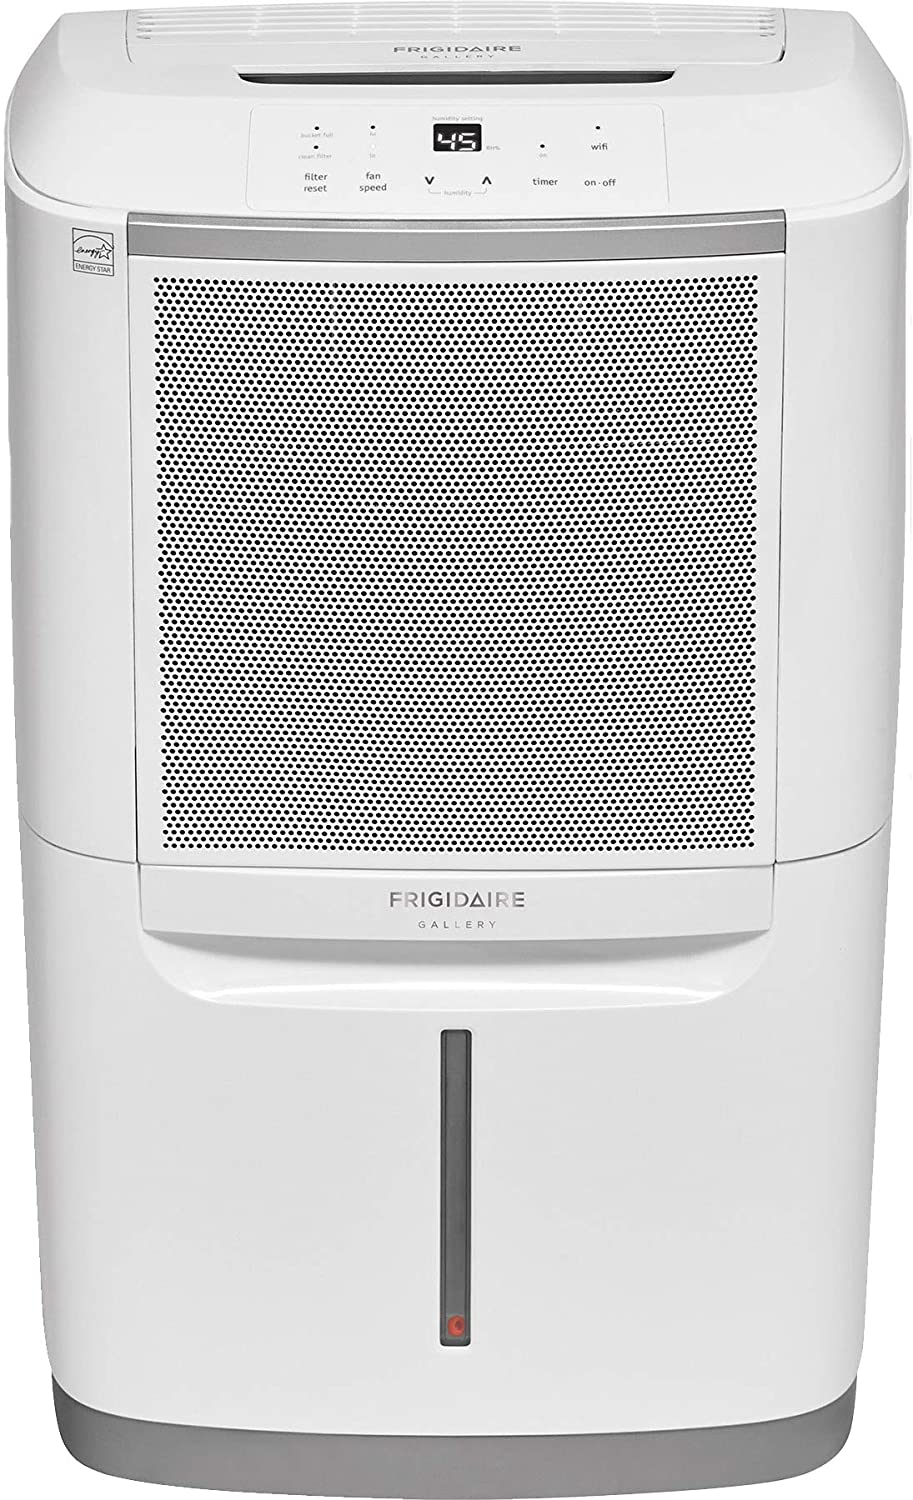 FRIGIDAIRE 70 Pint Dehumidifier with Wi-Fi Controls, White